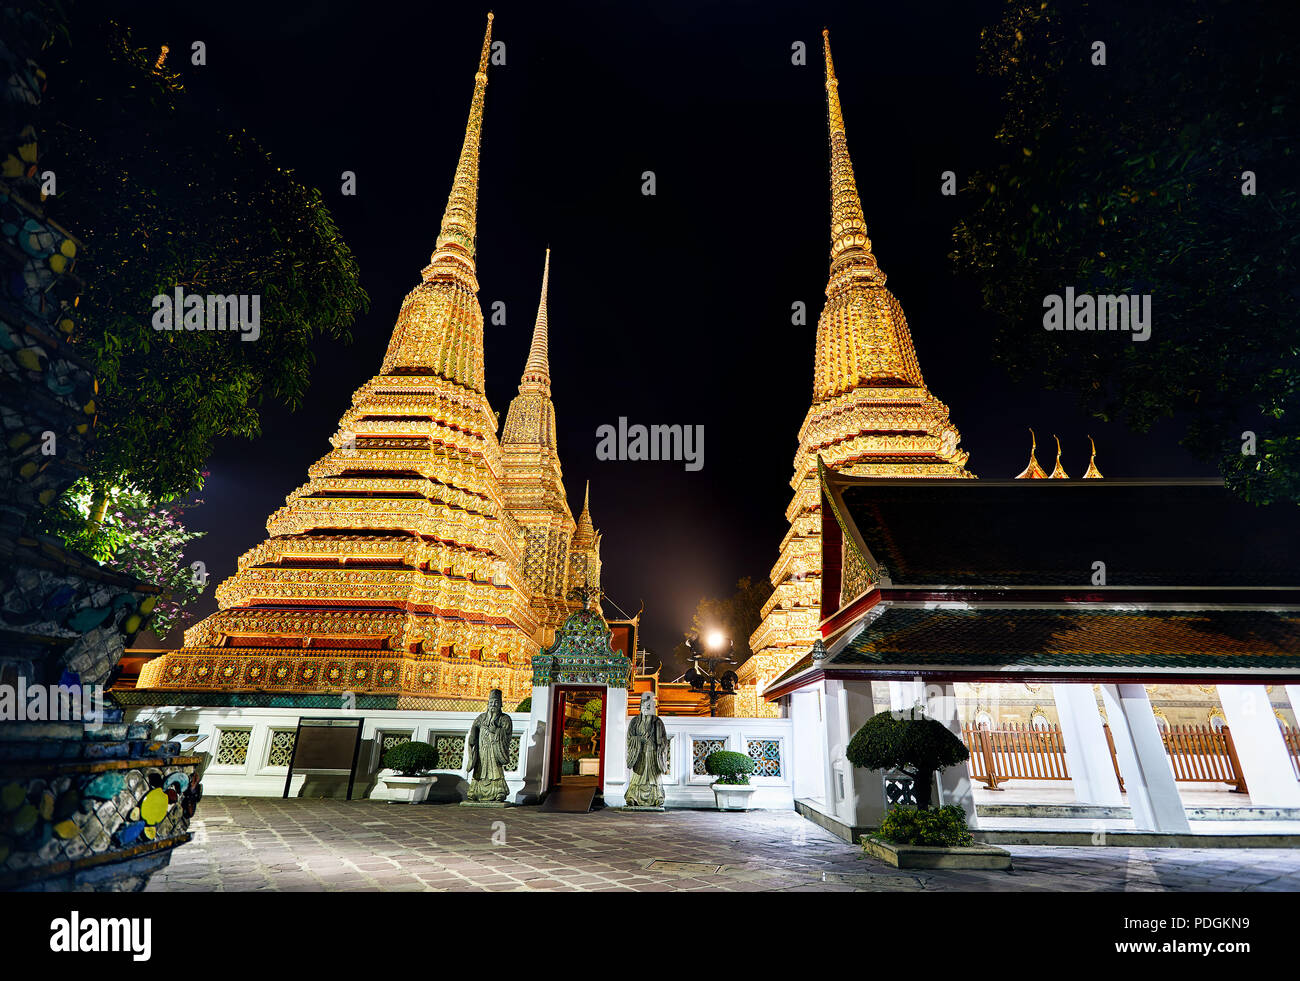 Buddhist Temple Wat Pho with golden Chedi in Bangkok at night sky in Thailand. Famous landmark and sight of the city. - Stock Image